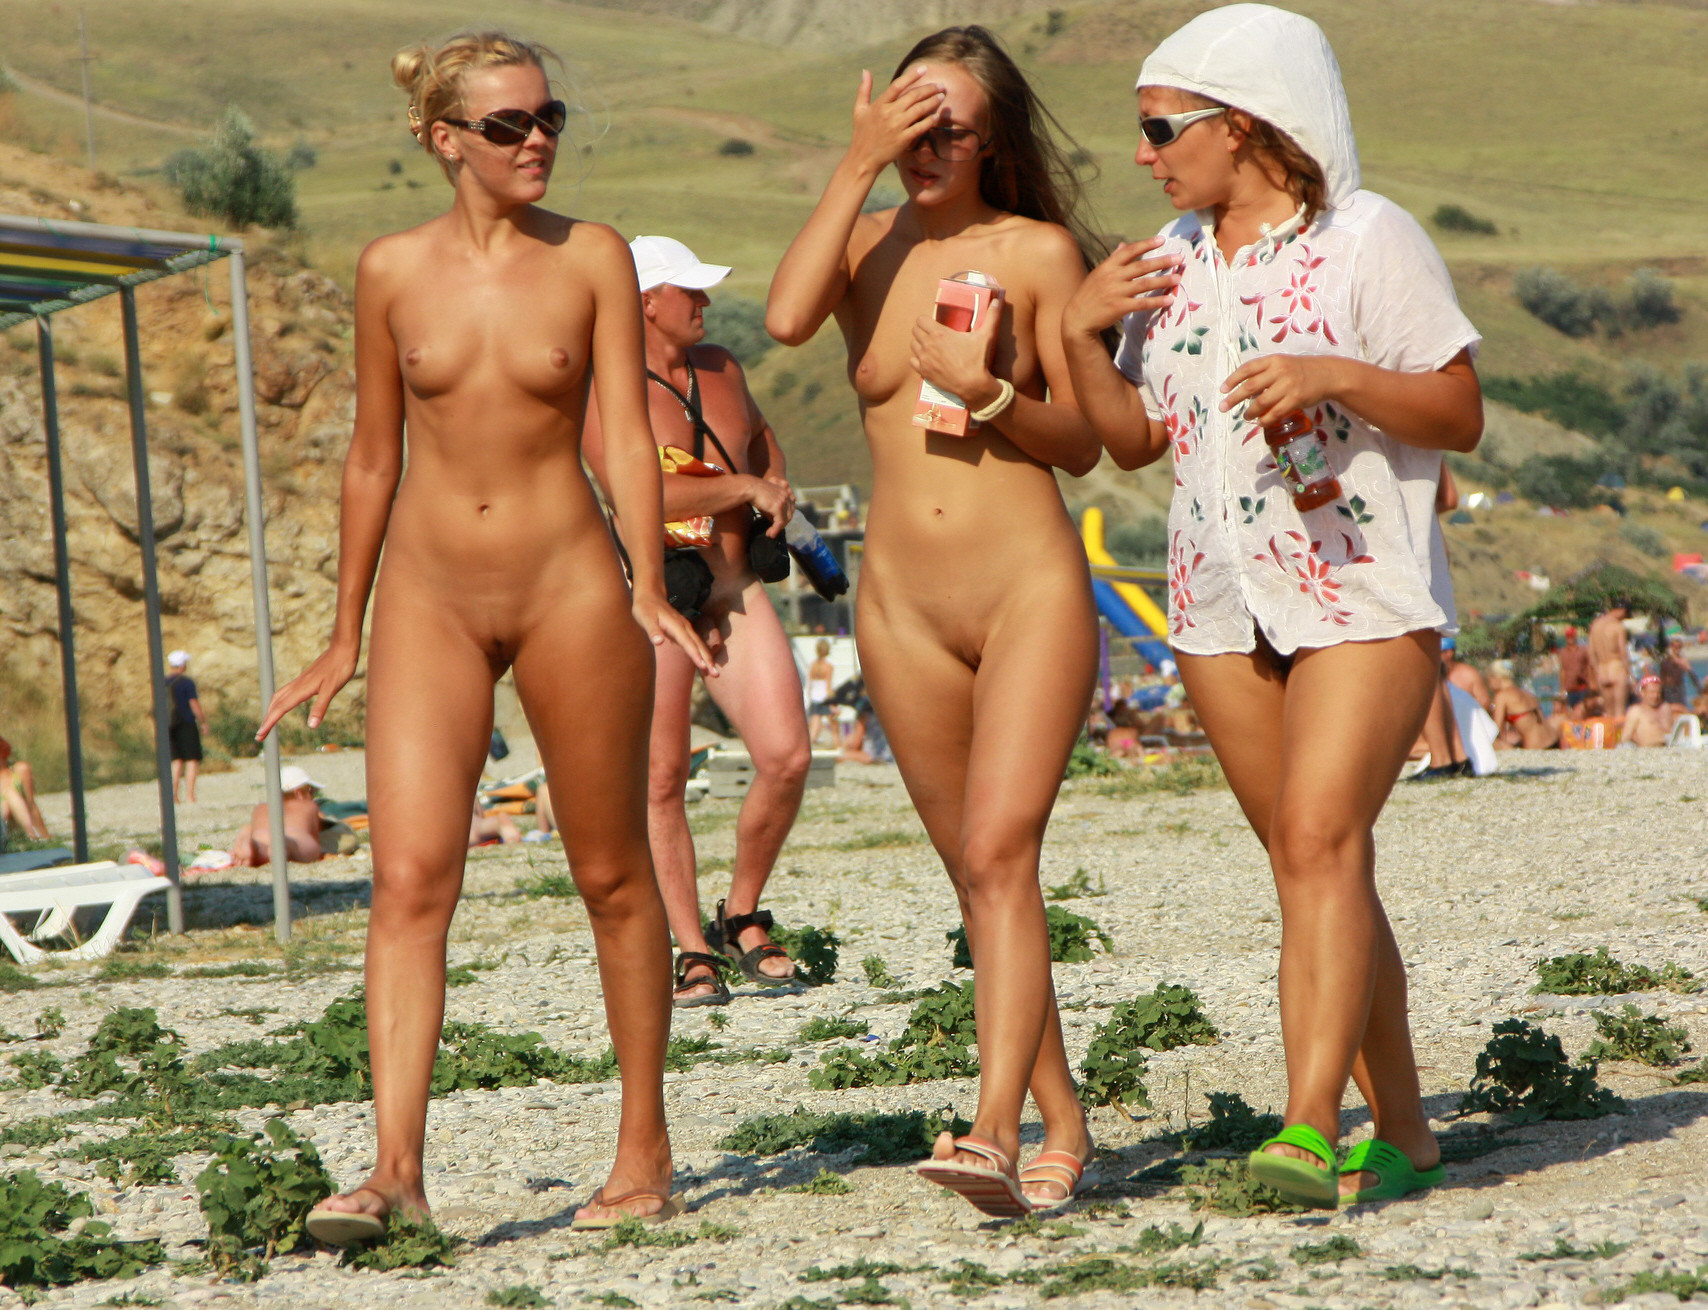 Topless beach group bikini girls